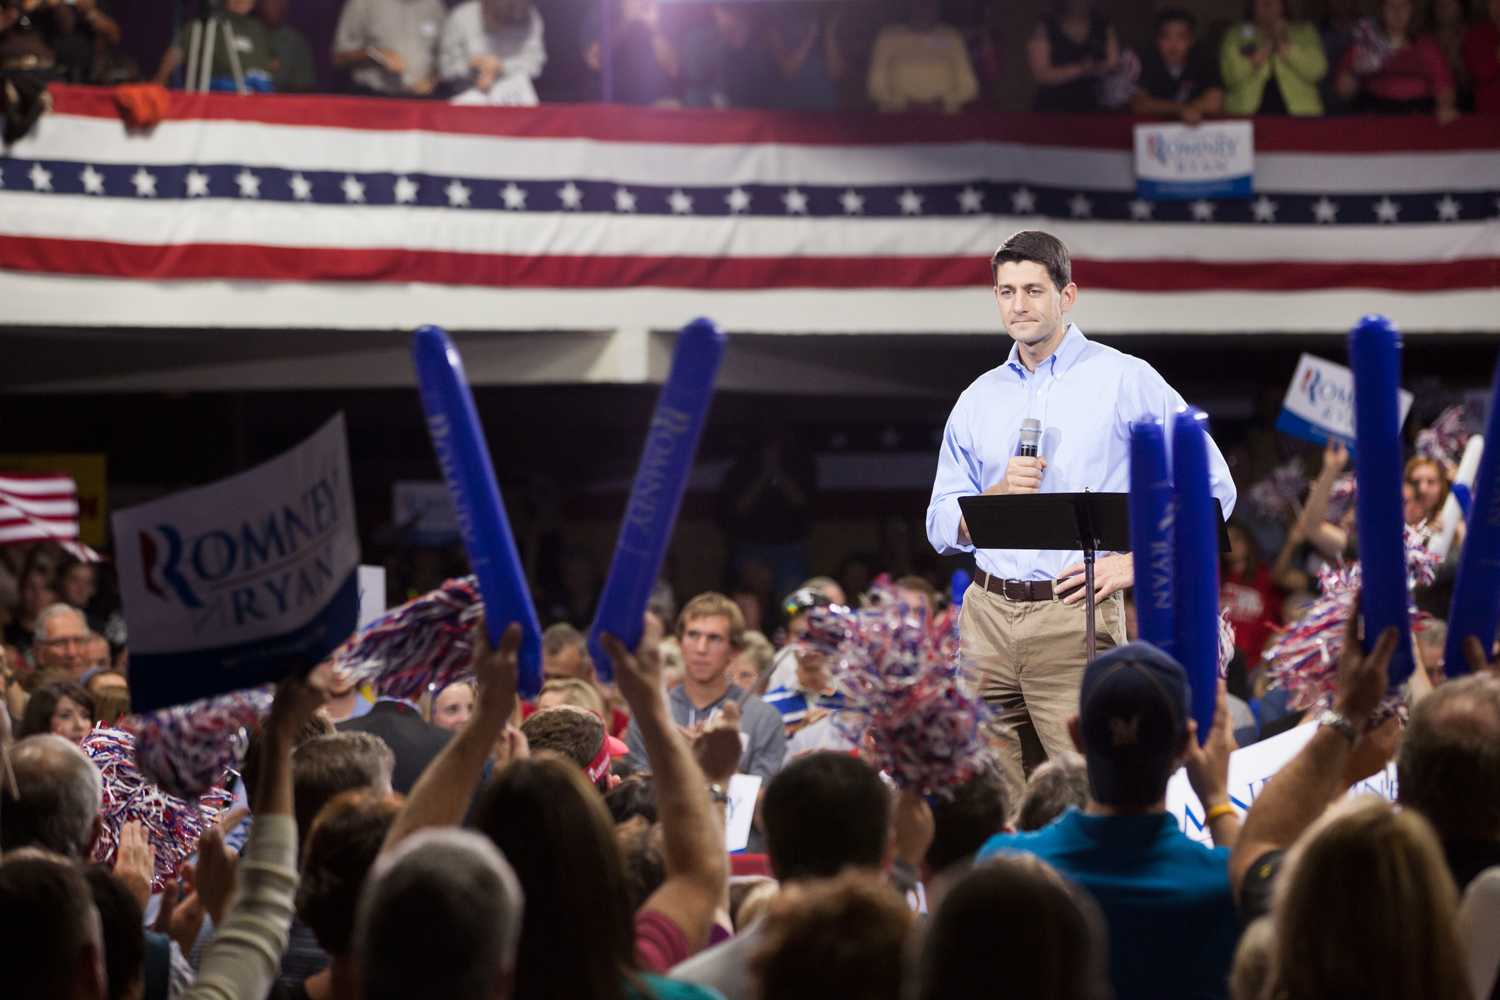 Paul Ryan speaks at the Dubuque Victory Rally and Bus Tour Kickoff in Dubuque, Iowa. Oct. 1, 2012.